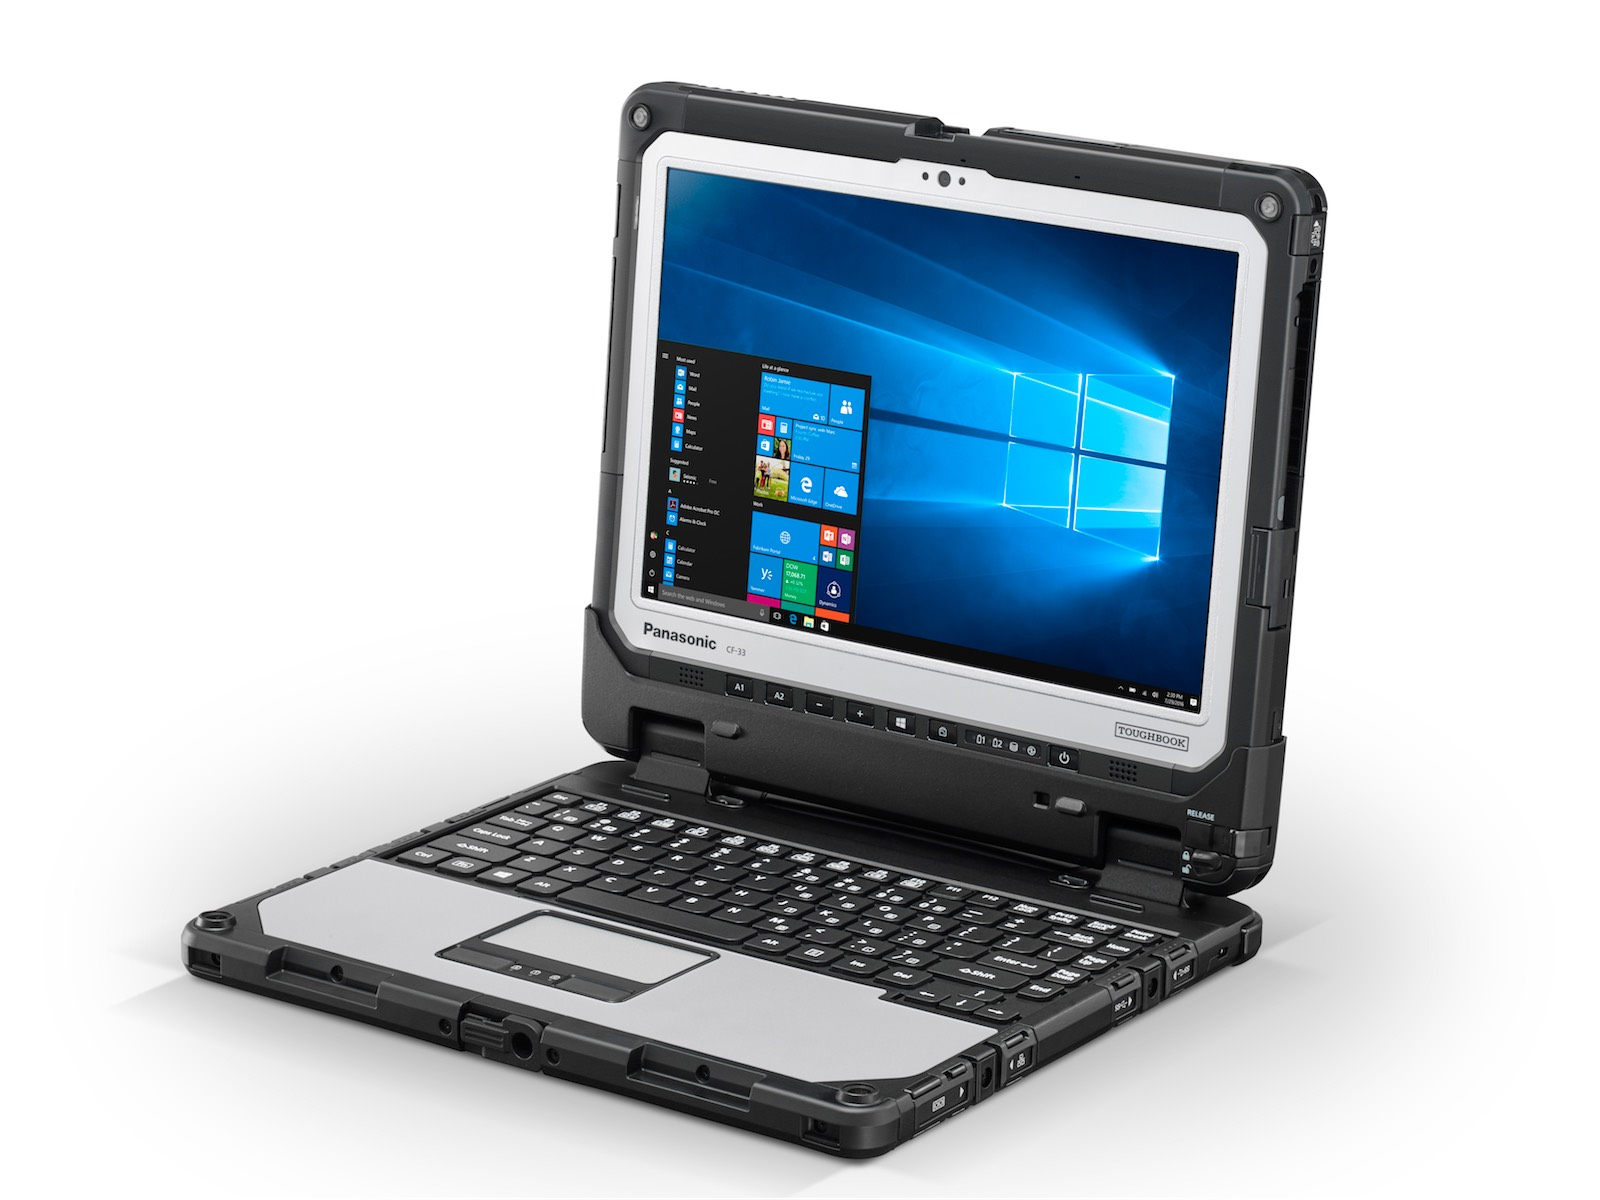 Panasonic Toughbook CF-33 uff 2